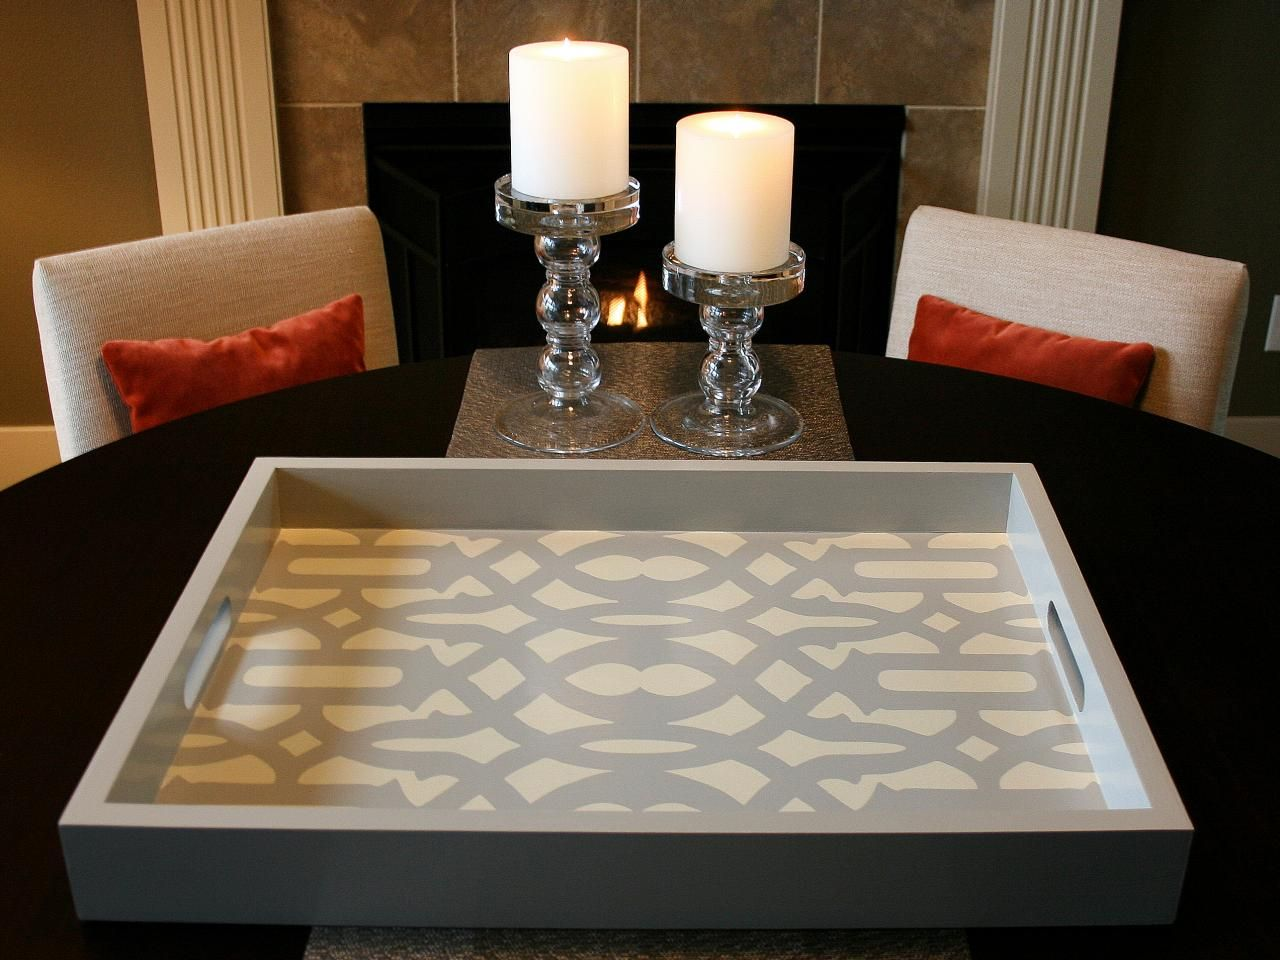 How to Stencil a Tray | Living Room and Dining Room Decorating Ideas and Design | HGTV